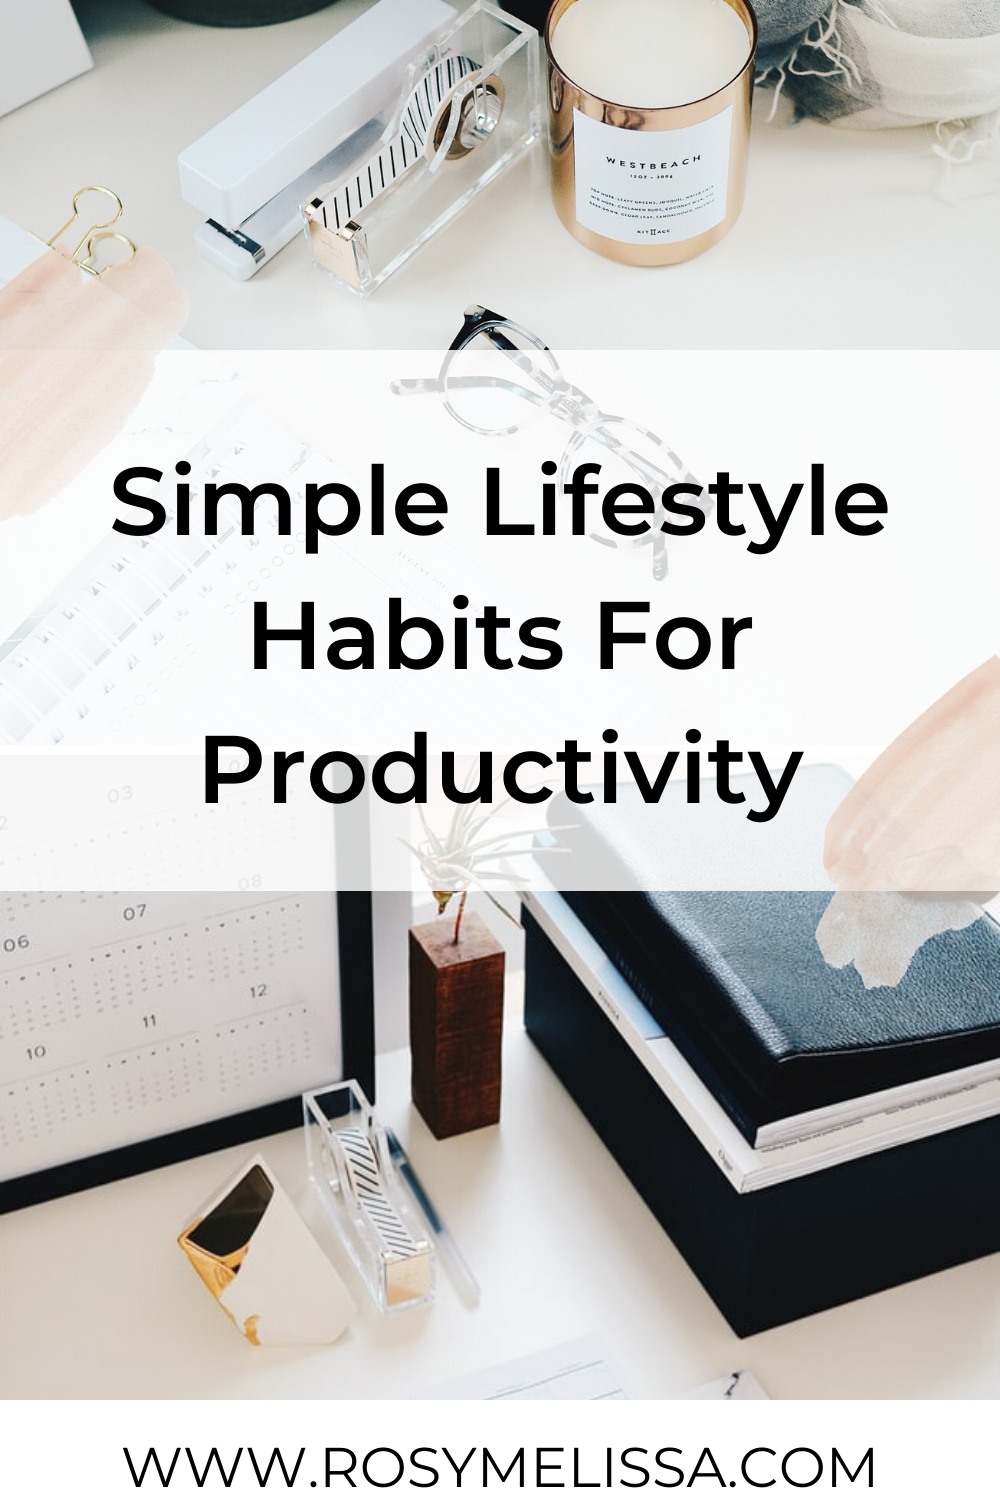 lifestyle habits to get your life together, tips and ideas for organization, how to plan, time blocking management, sleep patterns, lifestyle blog post